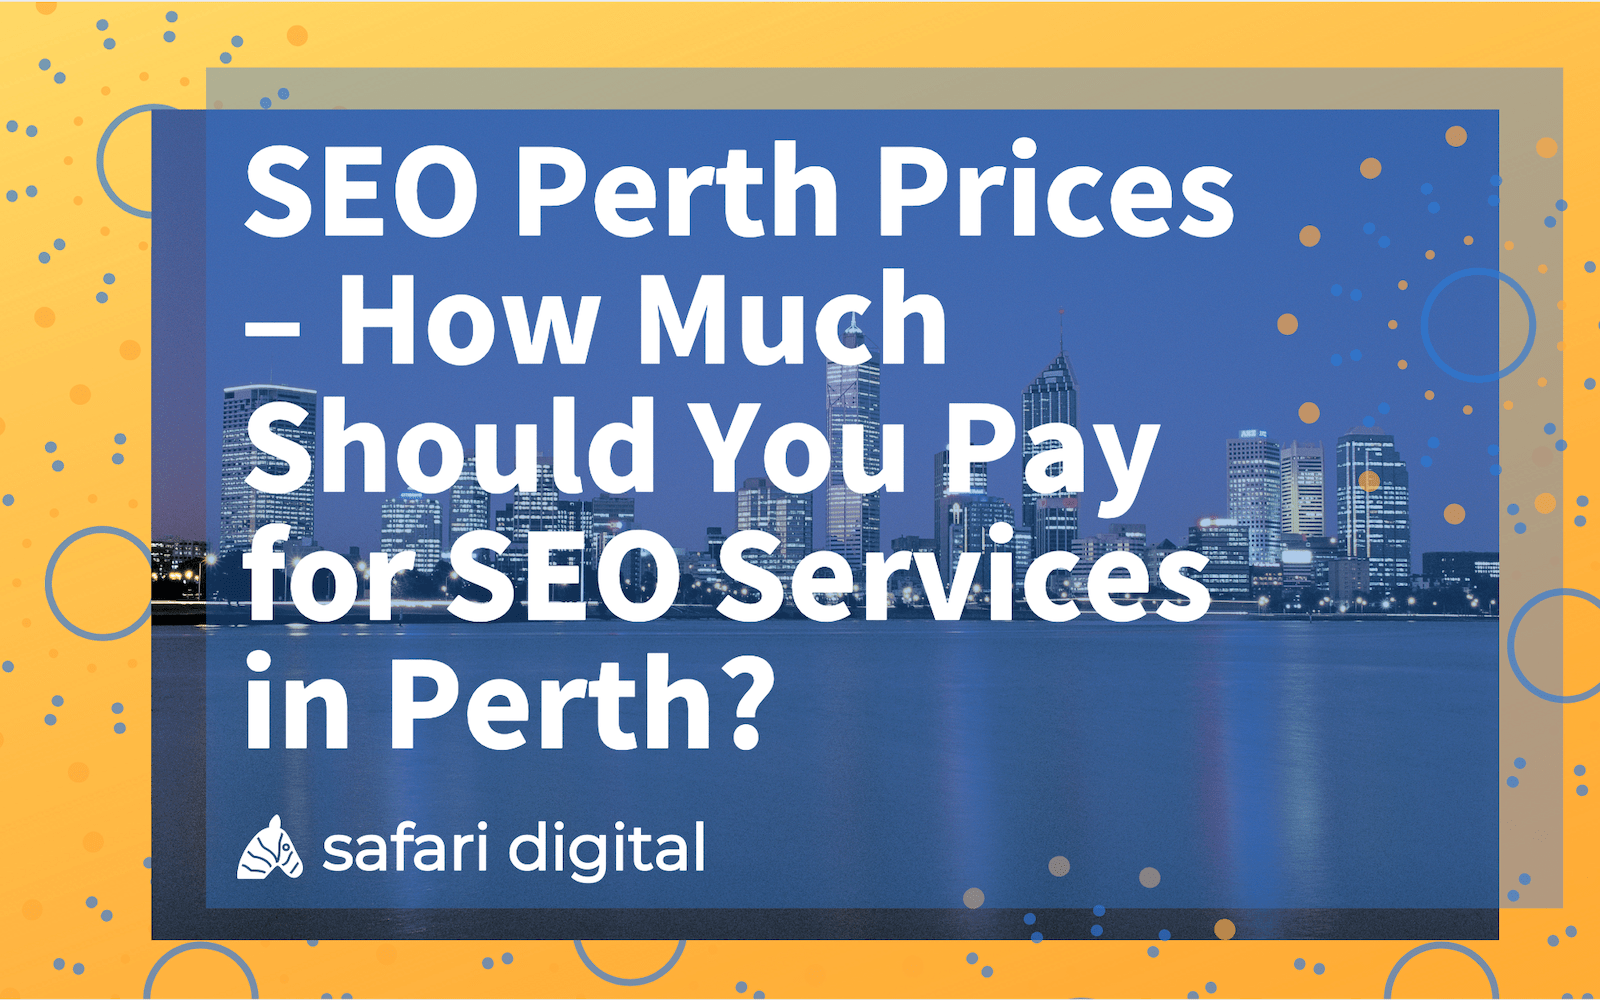 SEO perth prices cover image